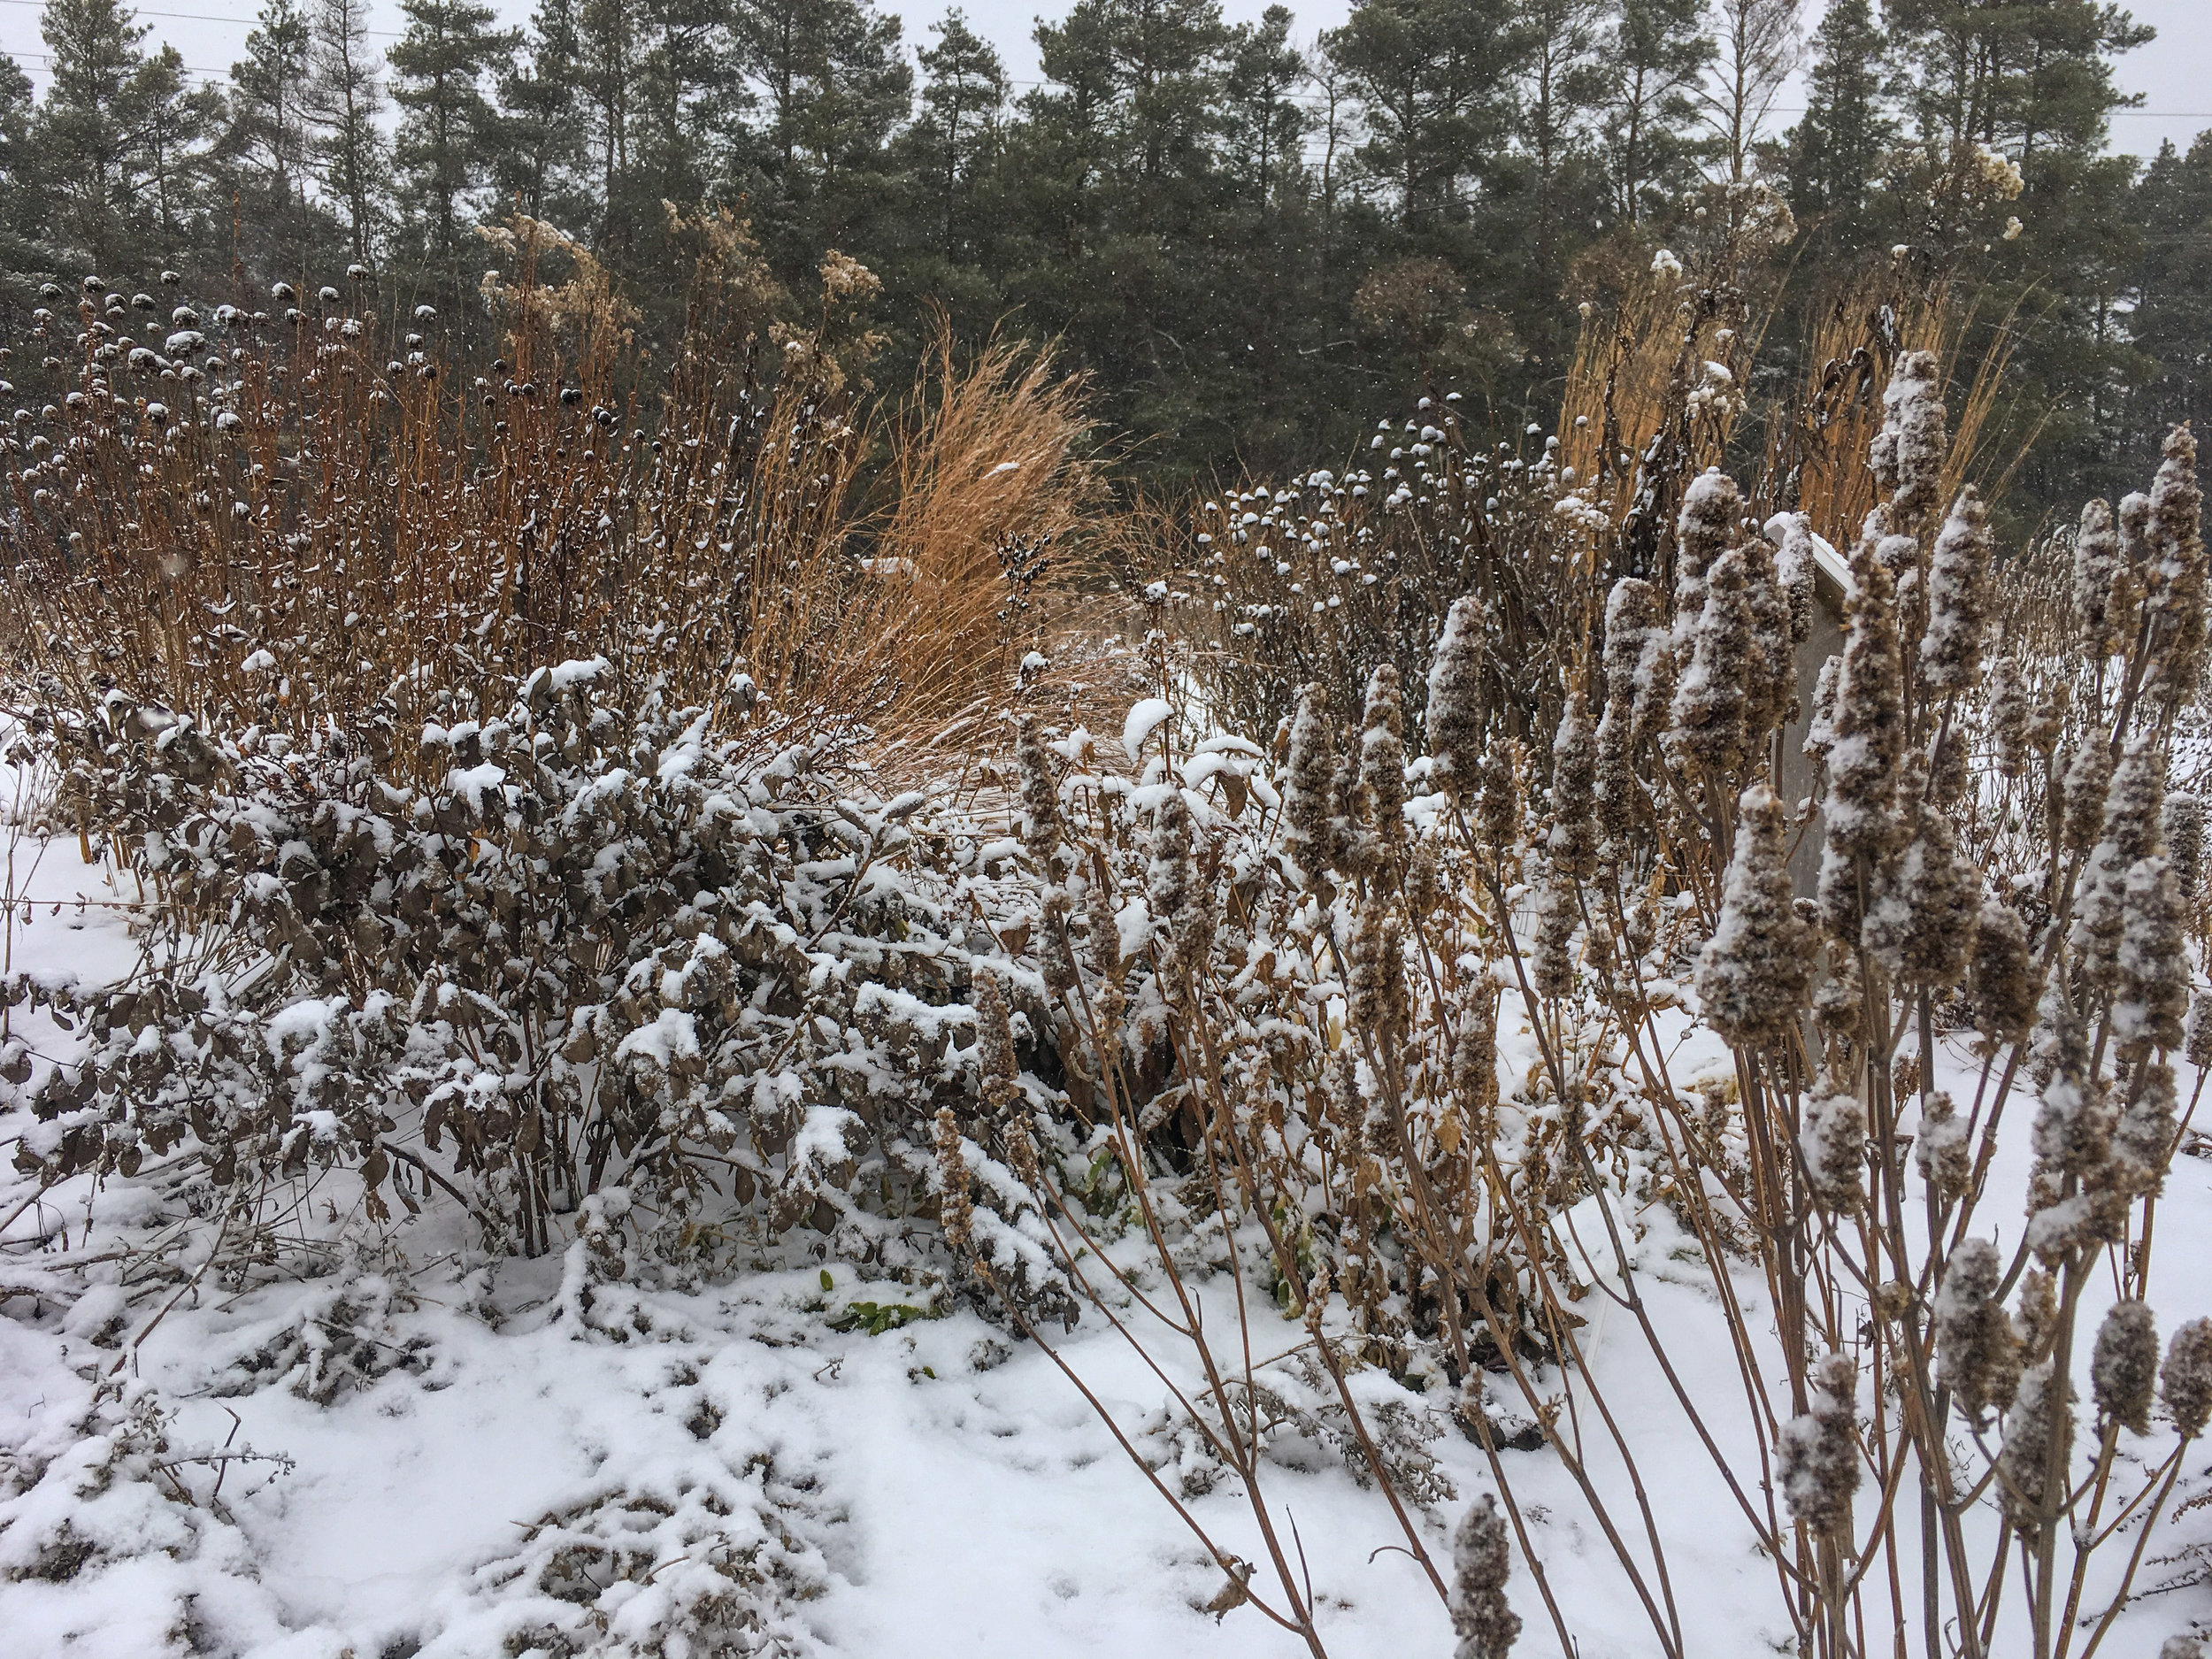 Standing plants provide important shelter for over-wintering pollinators